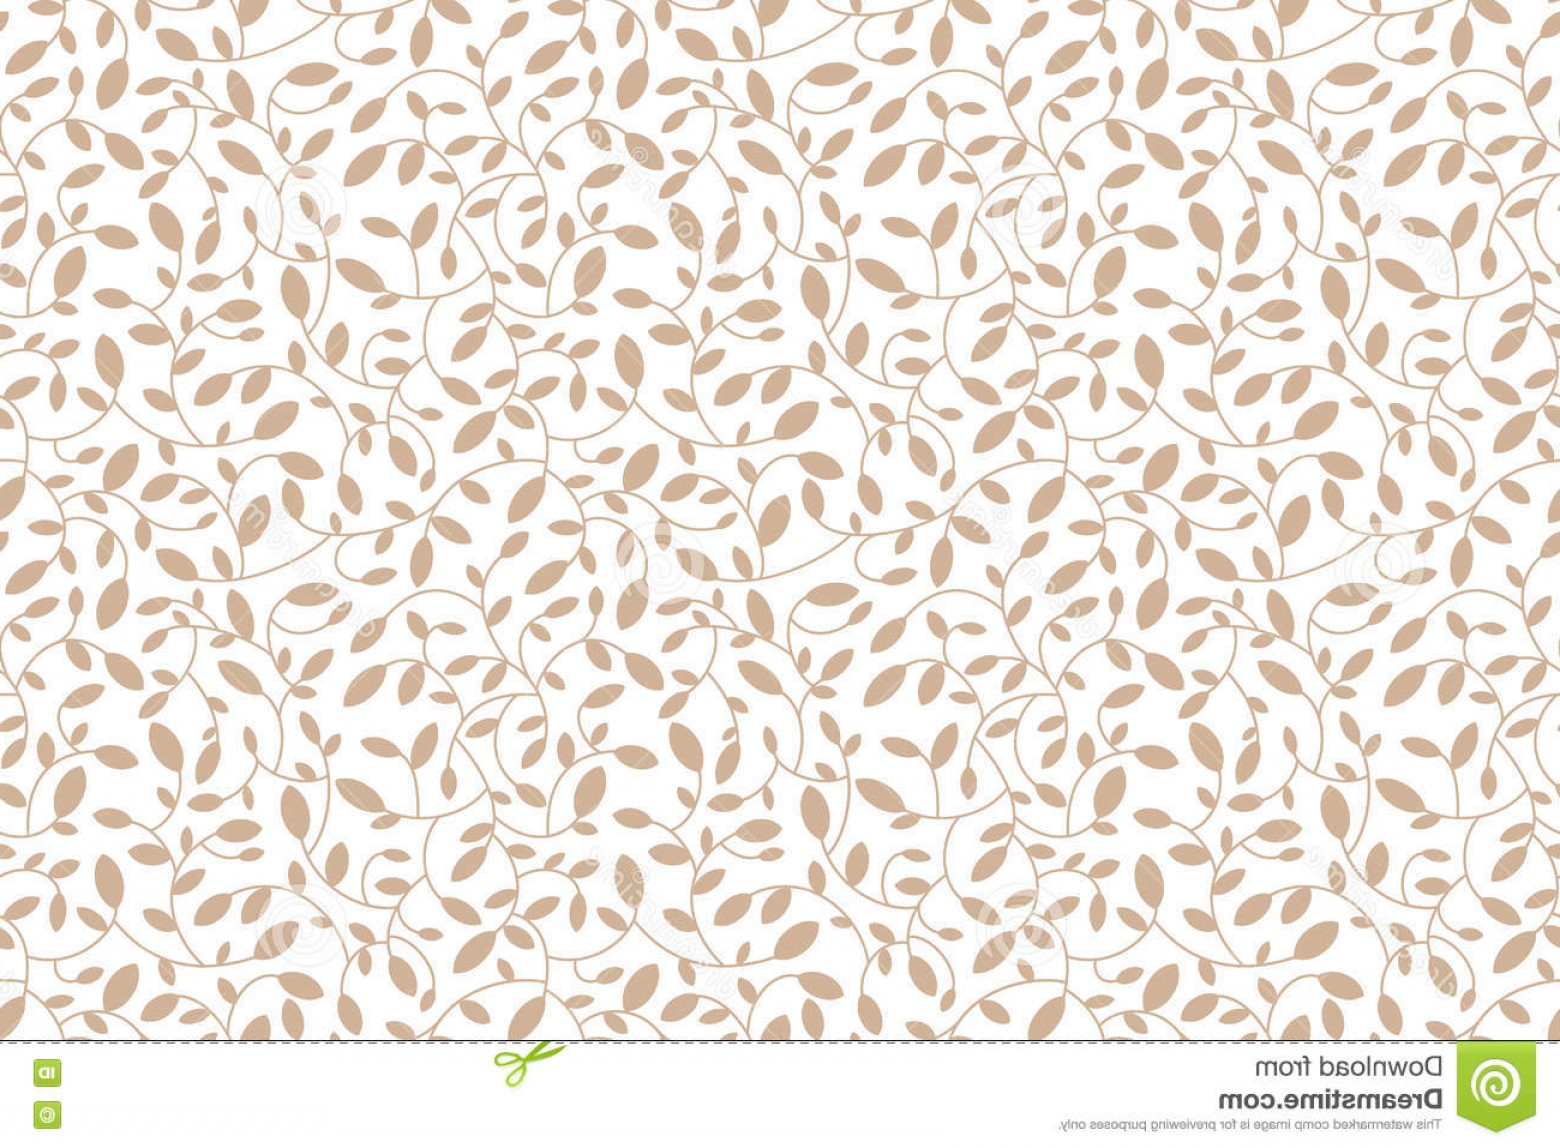 Transparent Brown Vector Background: Floral Seamless Pattern Brown Leaves And Sprouts Transparent Background Vector Print For Textile Or Web Illustration